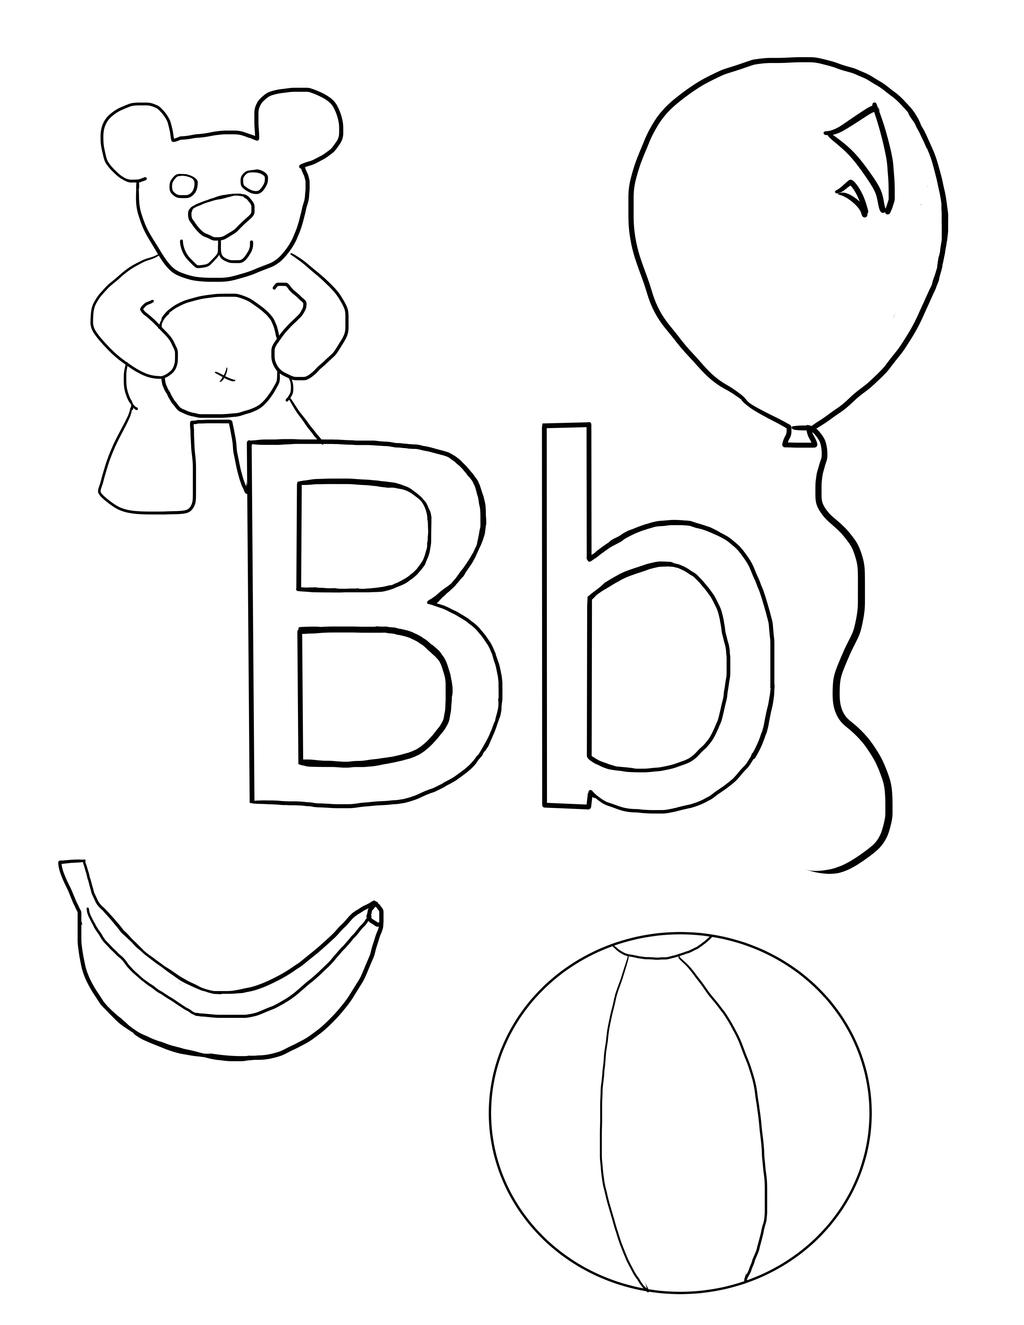 letter b coloring letter b coloring pages to download and print for free b letter coloring